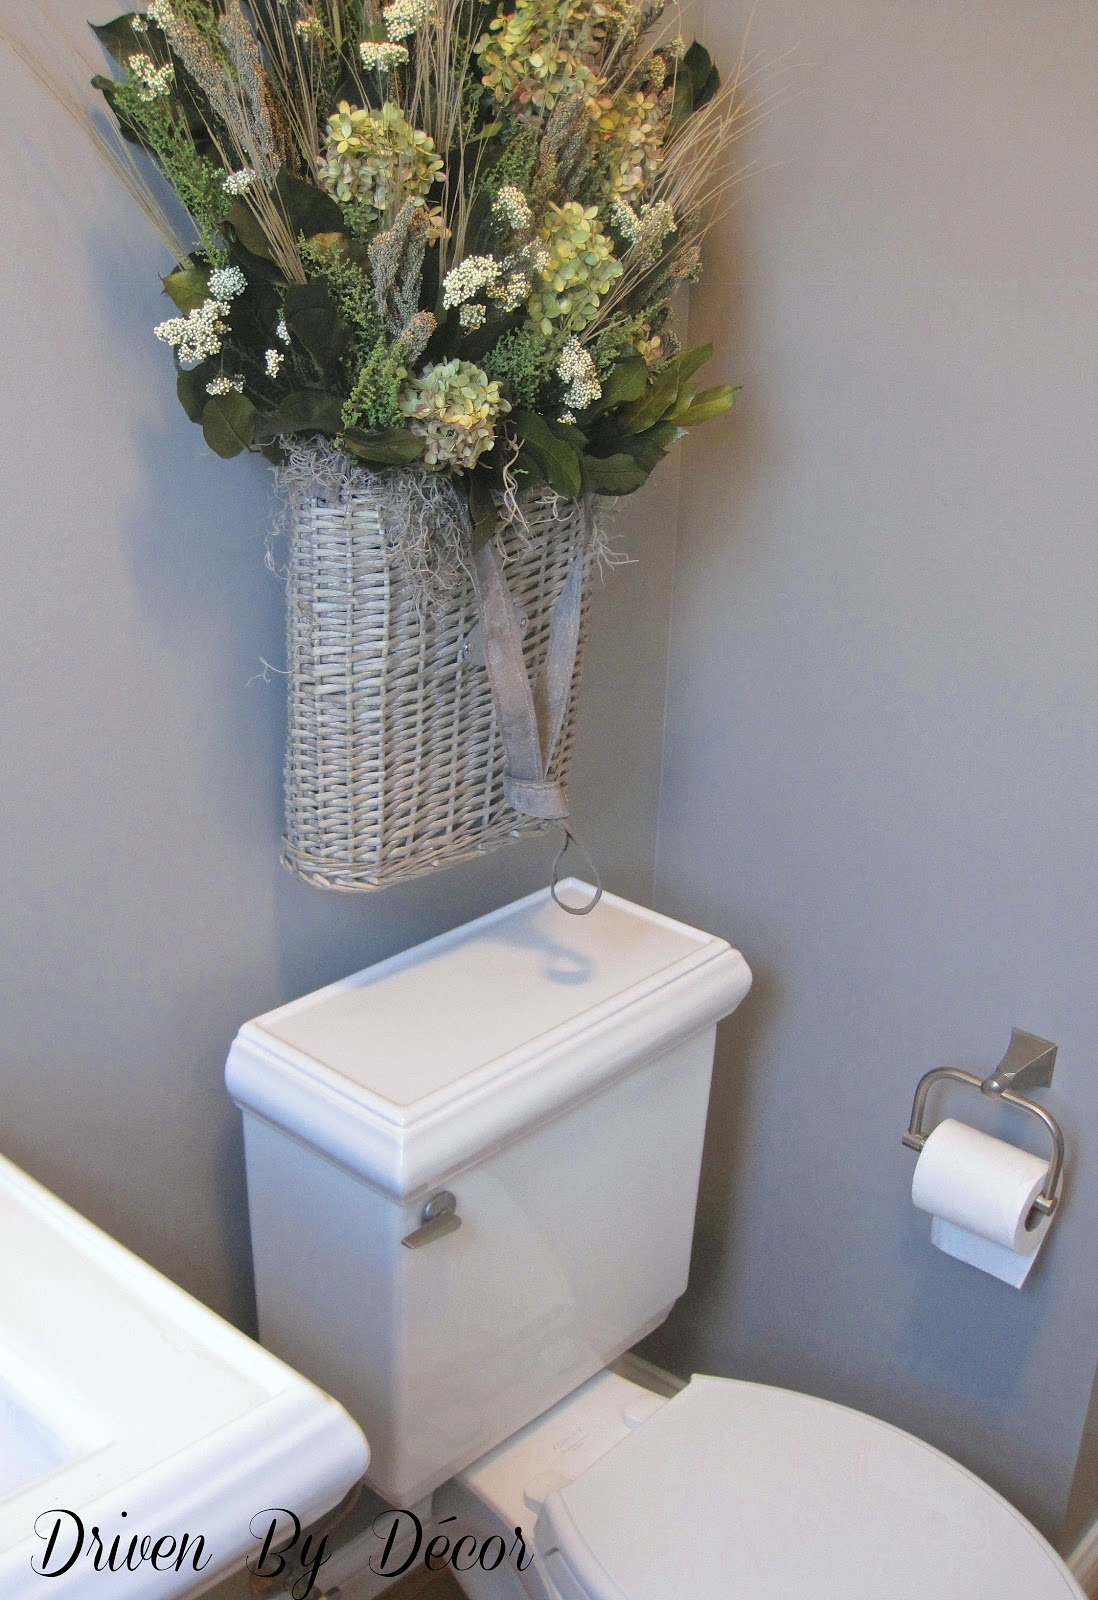 What 39 s over your toilet driven by decor Over the toilet design ideas